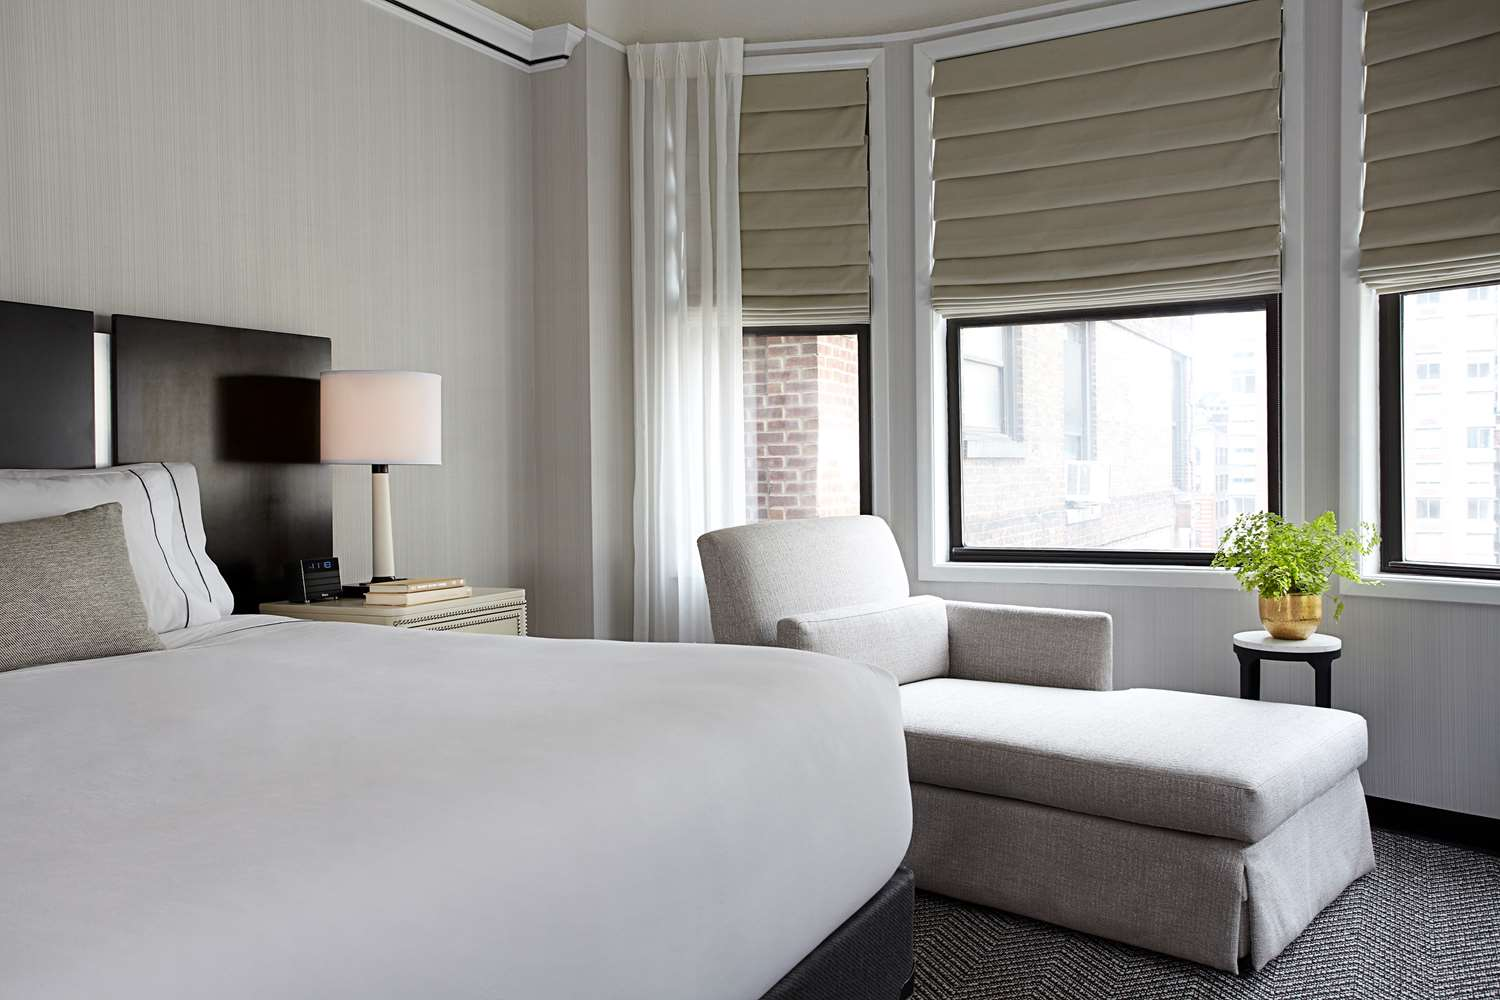 Room - Gregory Hotel New York